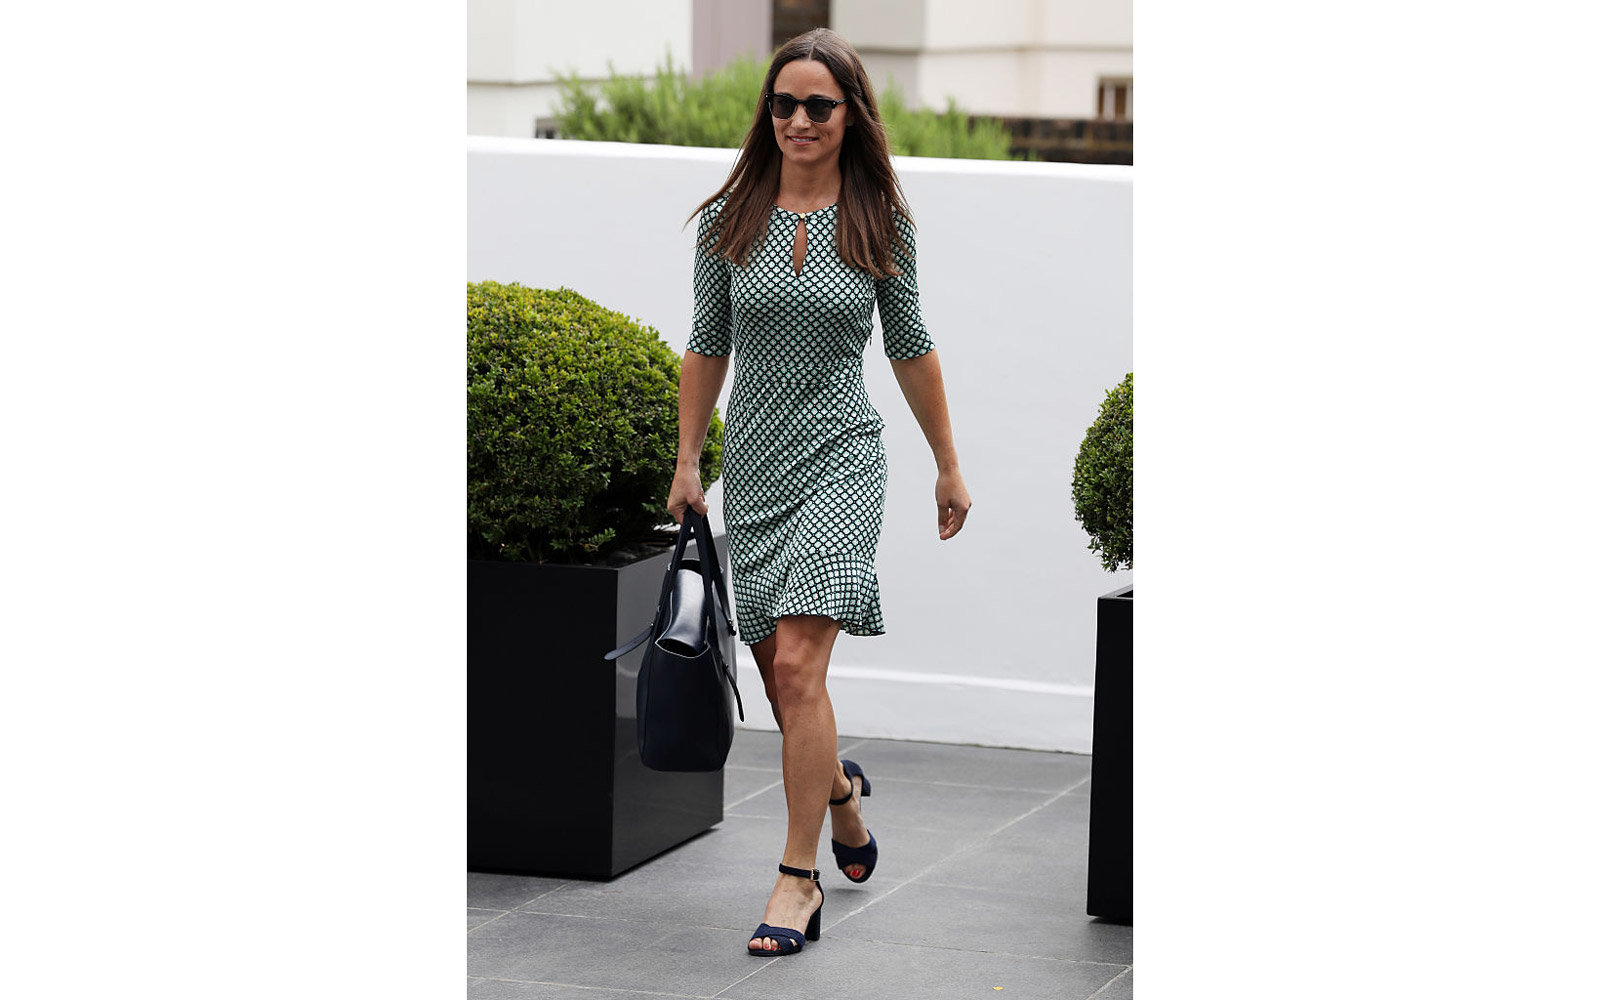 LONDON, UNITED KINGDOM - JULY 21:  Pippa Middleton leaves home on July 21, 2016 in London, England. (Photo by Alex Huckle/GC Images)